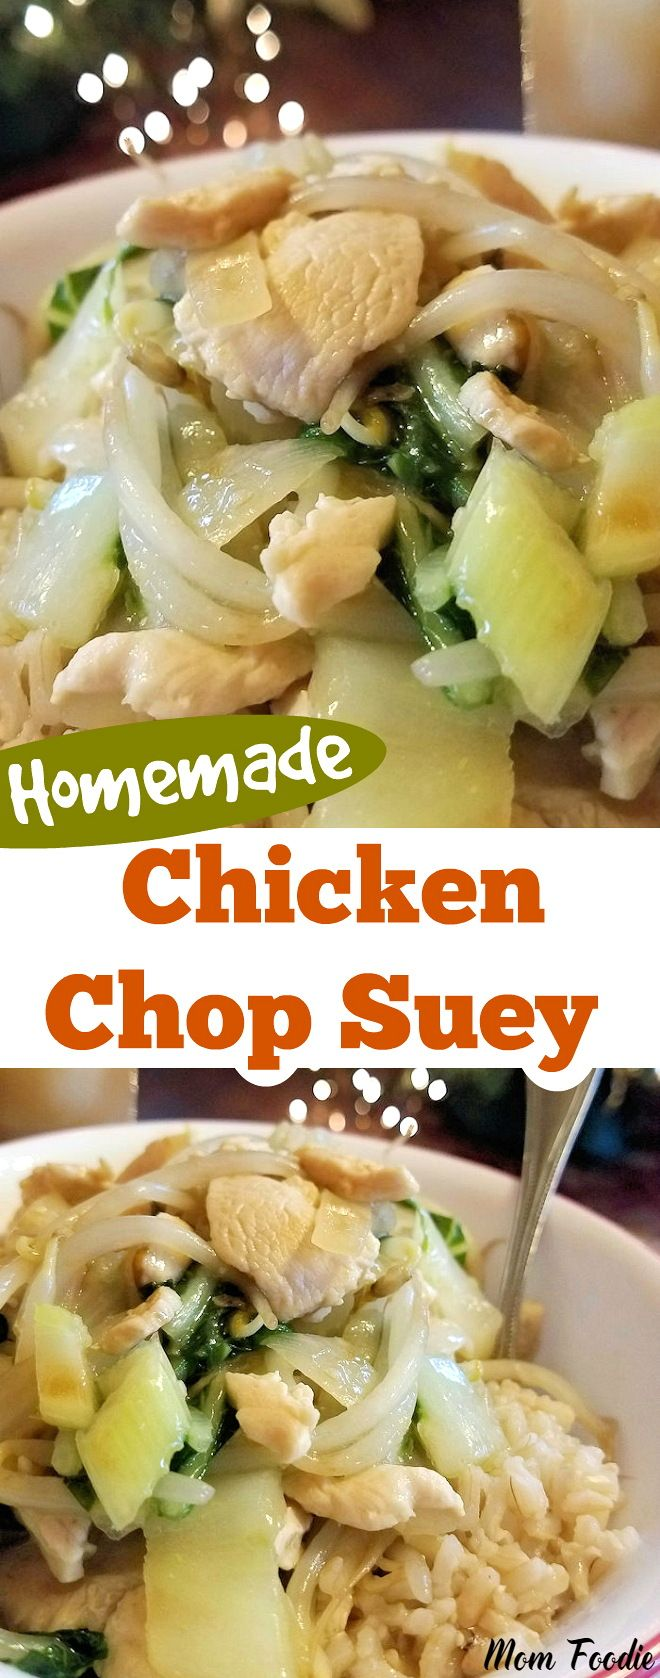 Homemade chicken chop suey and easy chinese dinner theme chopseuy homemade chicken chop suey and easy chinese dinner theme chopseuy asianrecipes weeknightdinner forumfinder Gallery